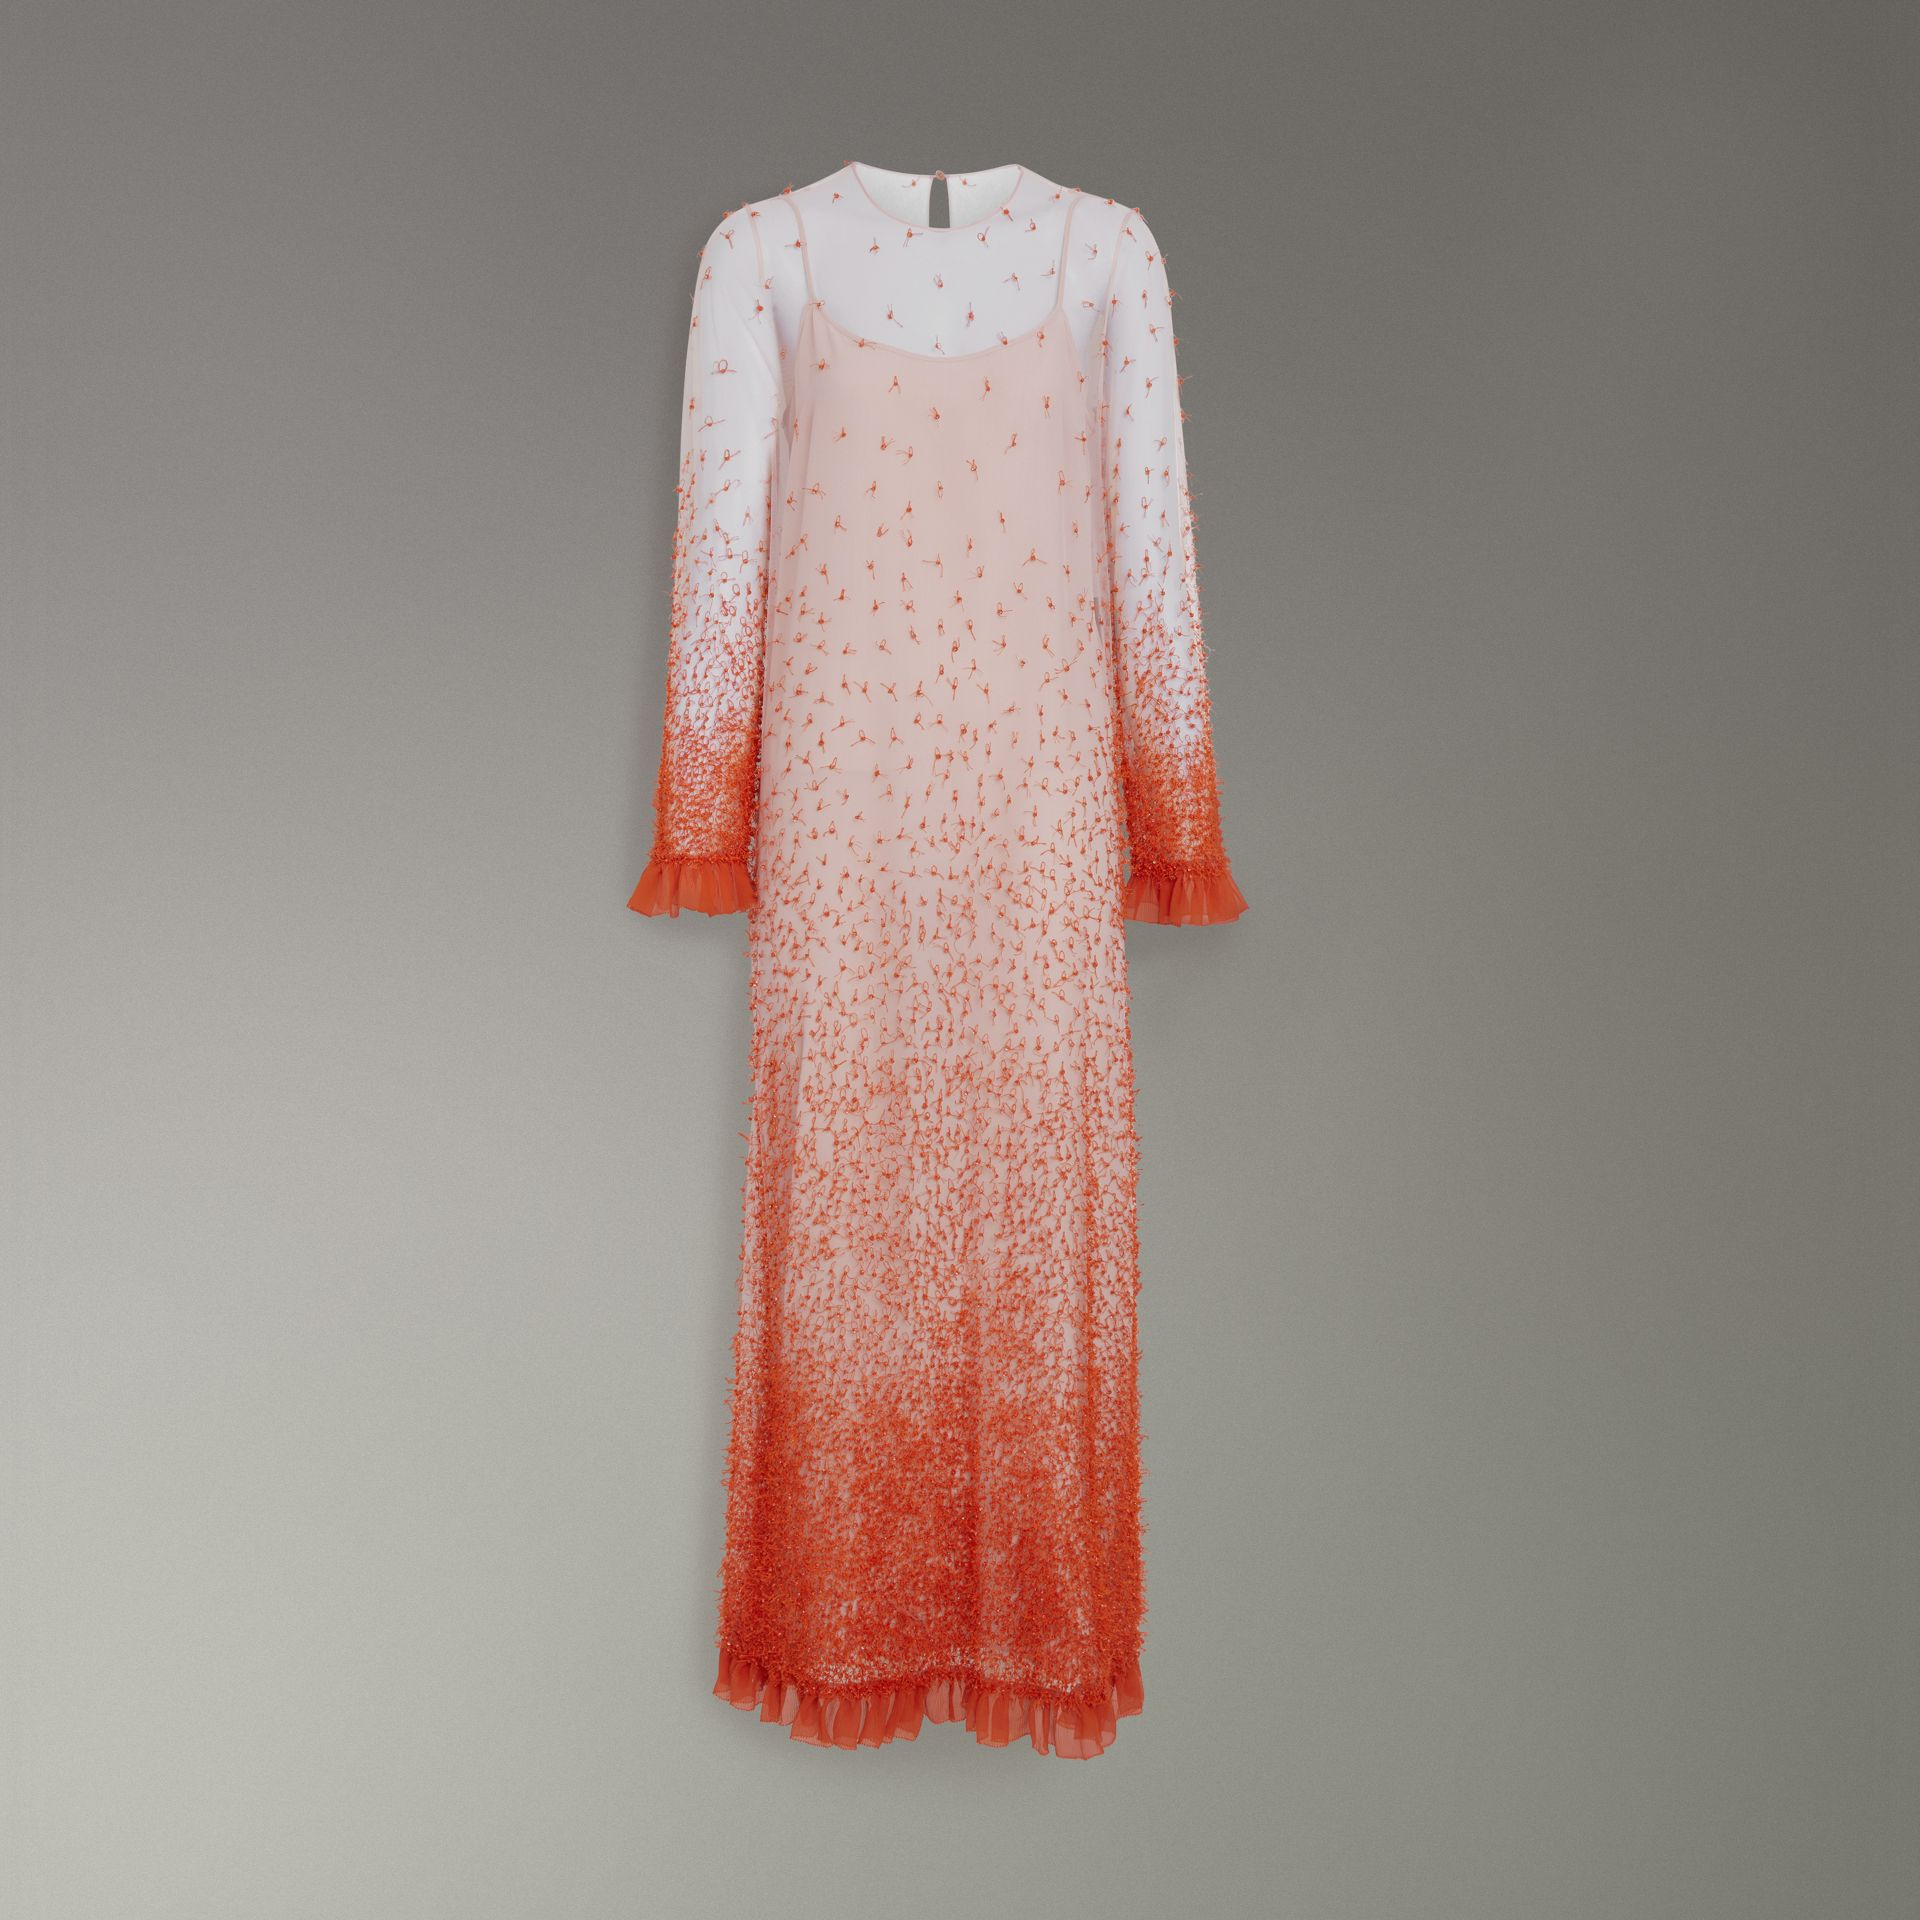 Dégradé Hand-beaded Crepon Dress in Coral - Women | Burberry - gallery image 3